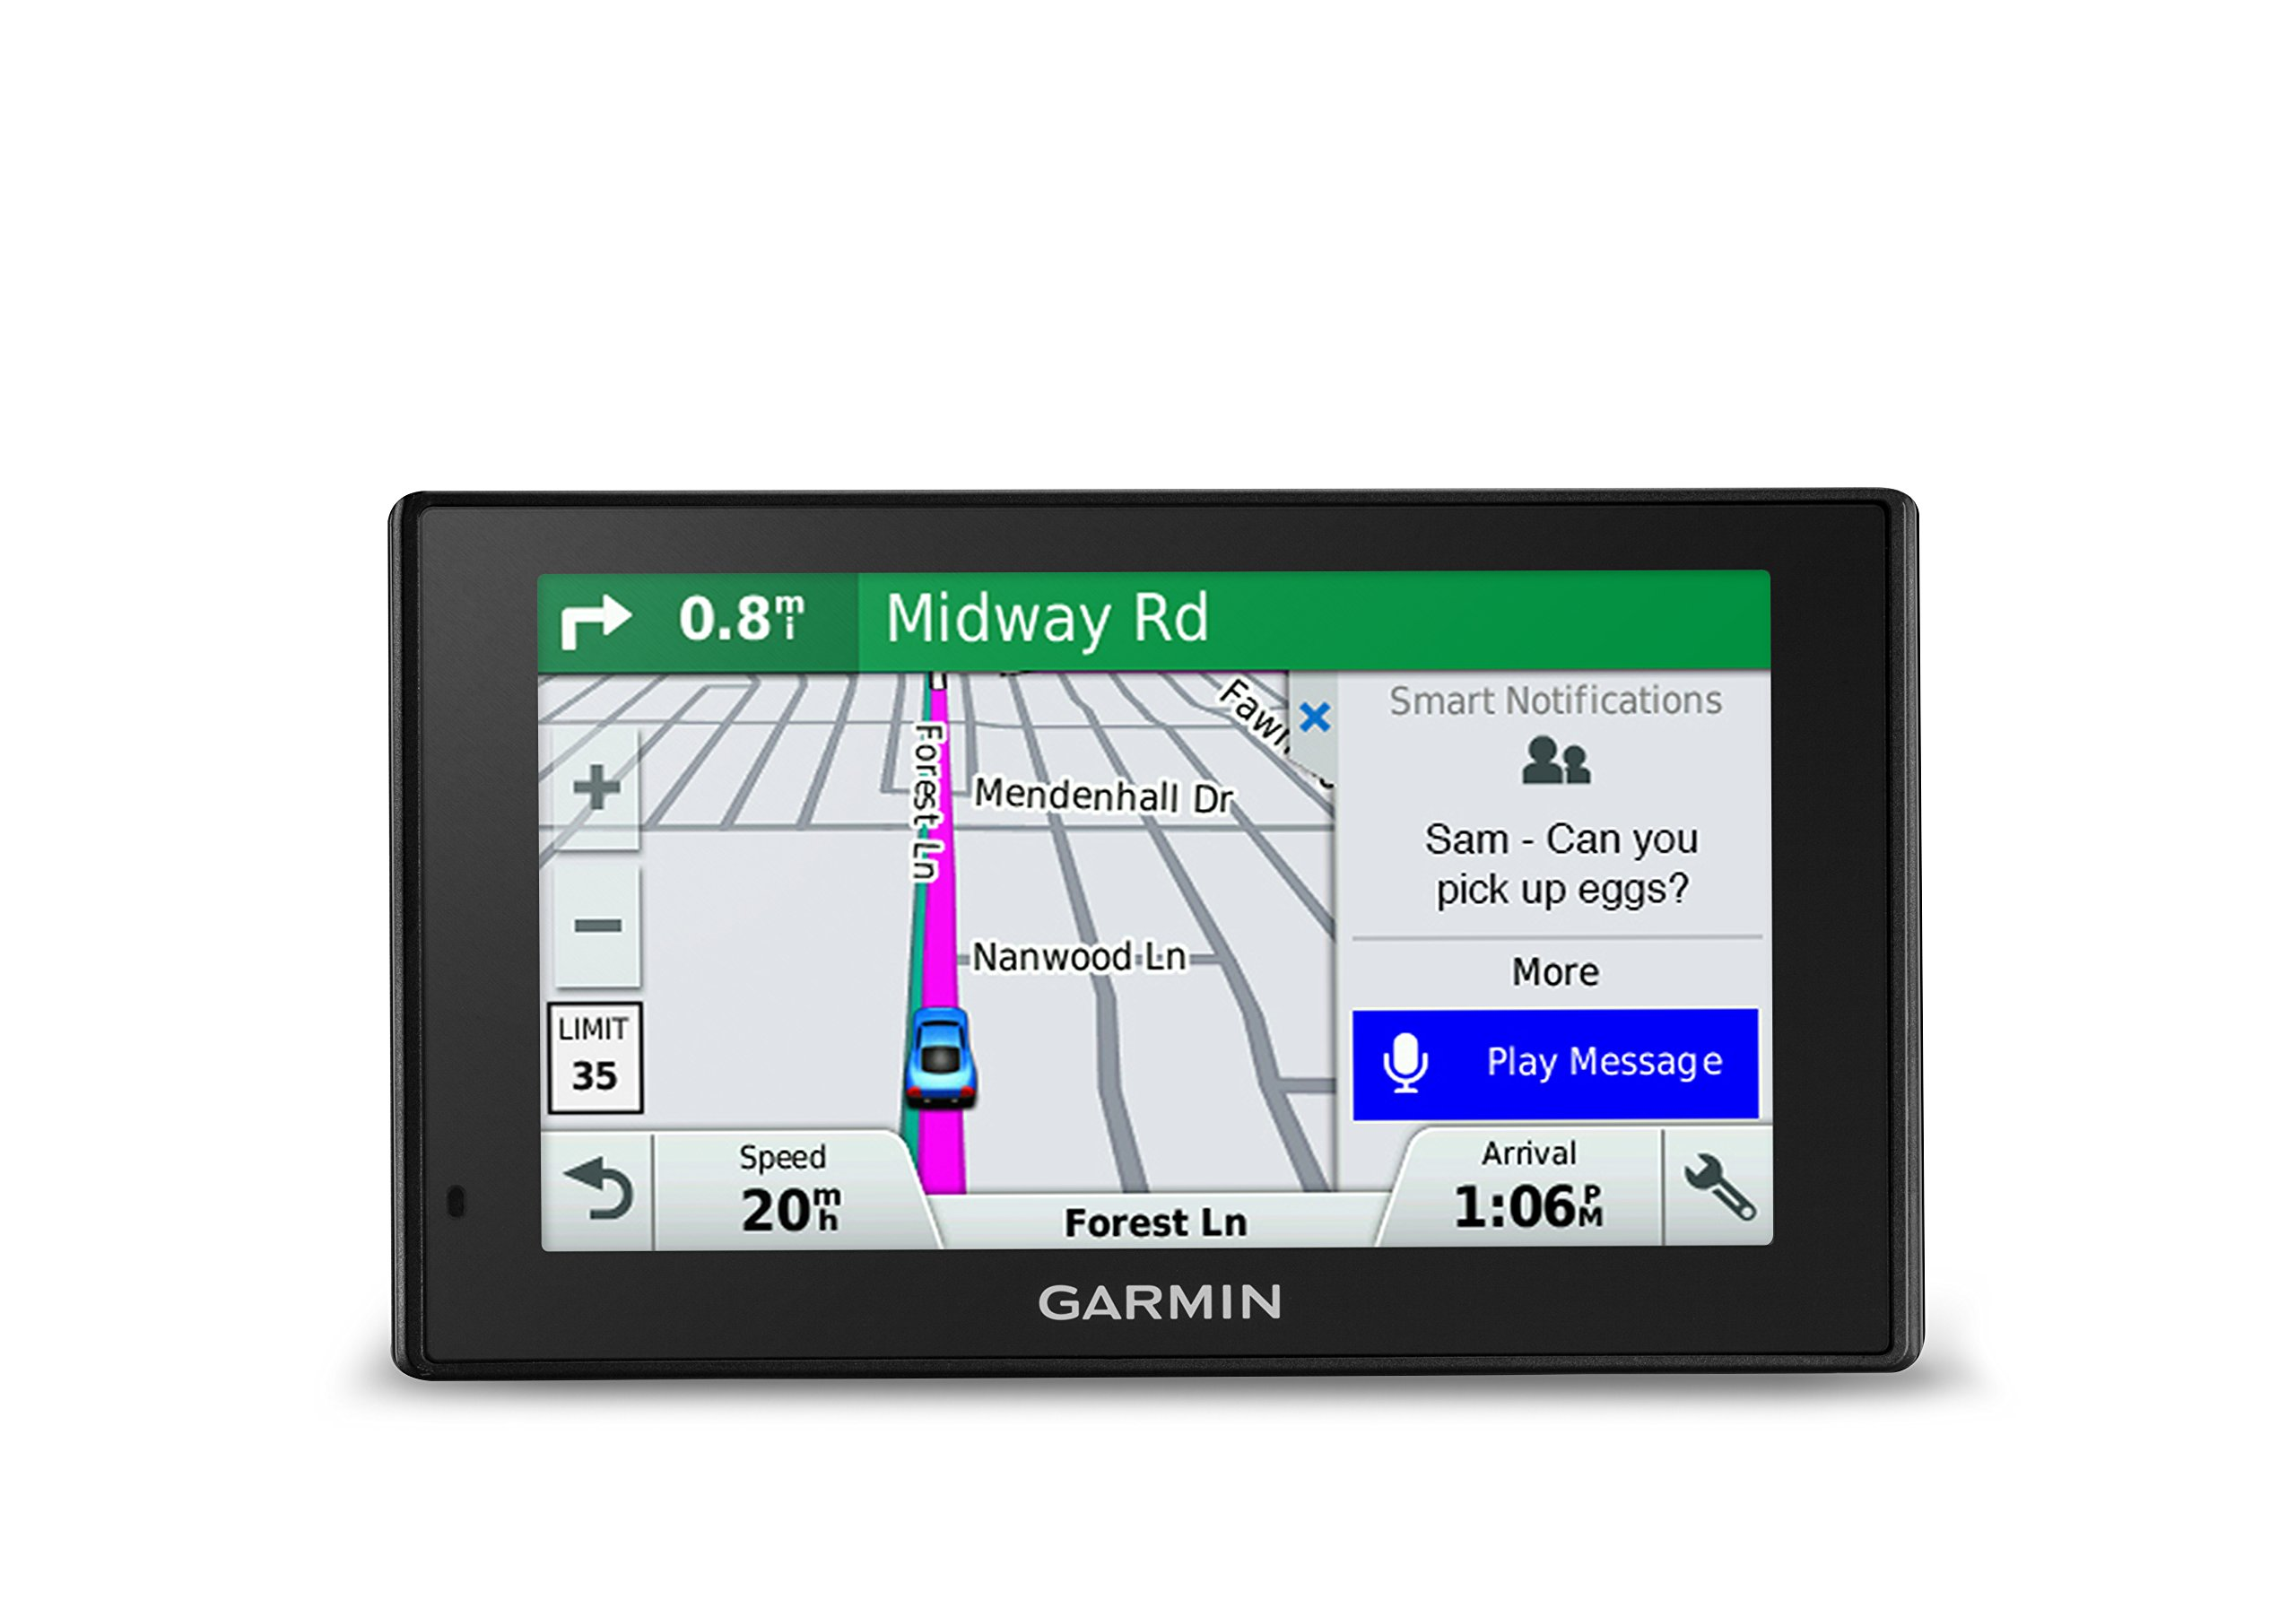 Garmin DriveSmart Notifications Activation TripAdvisor